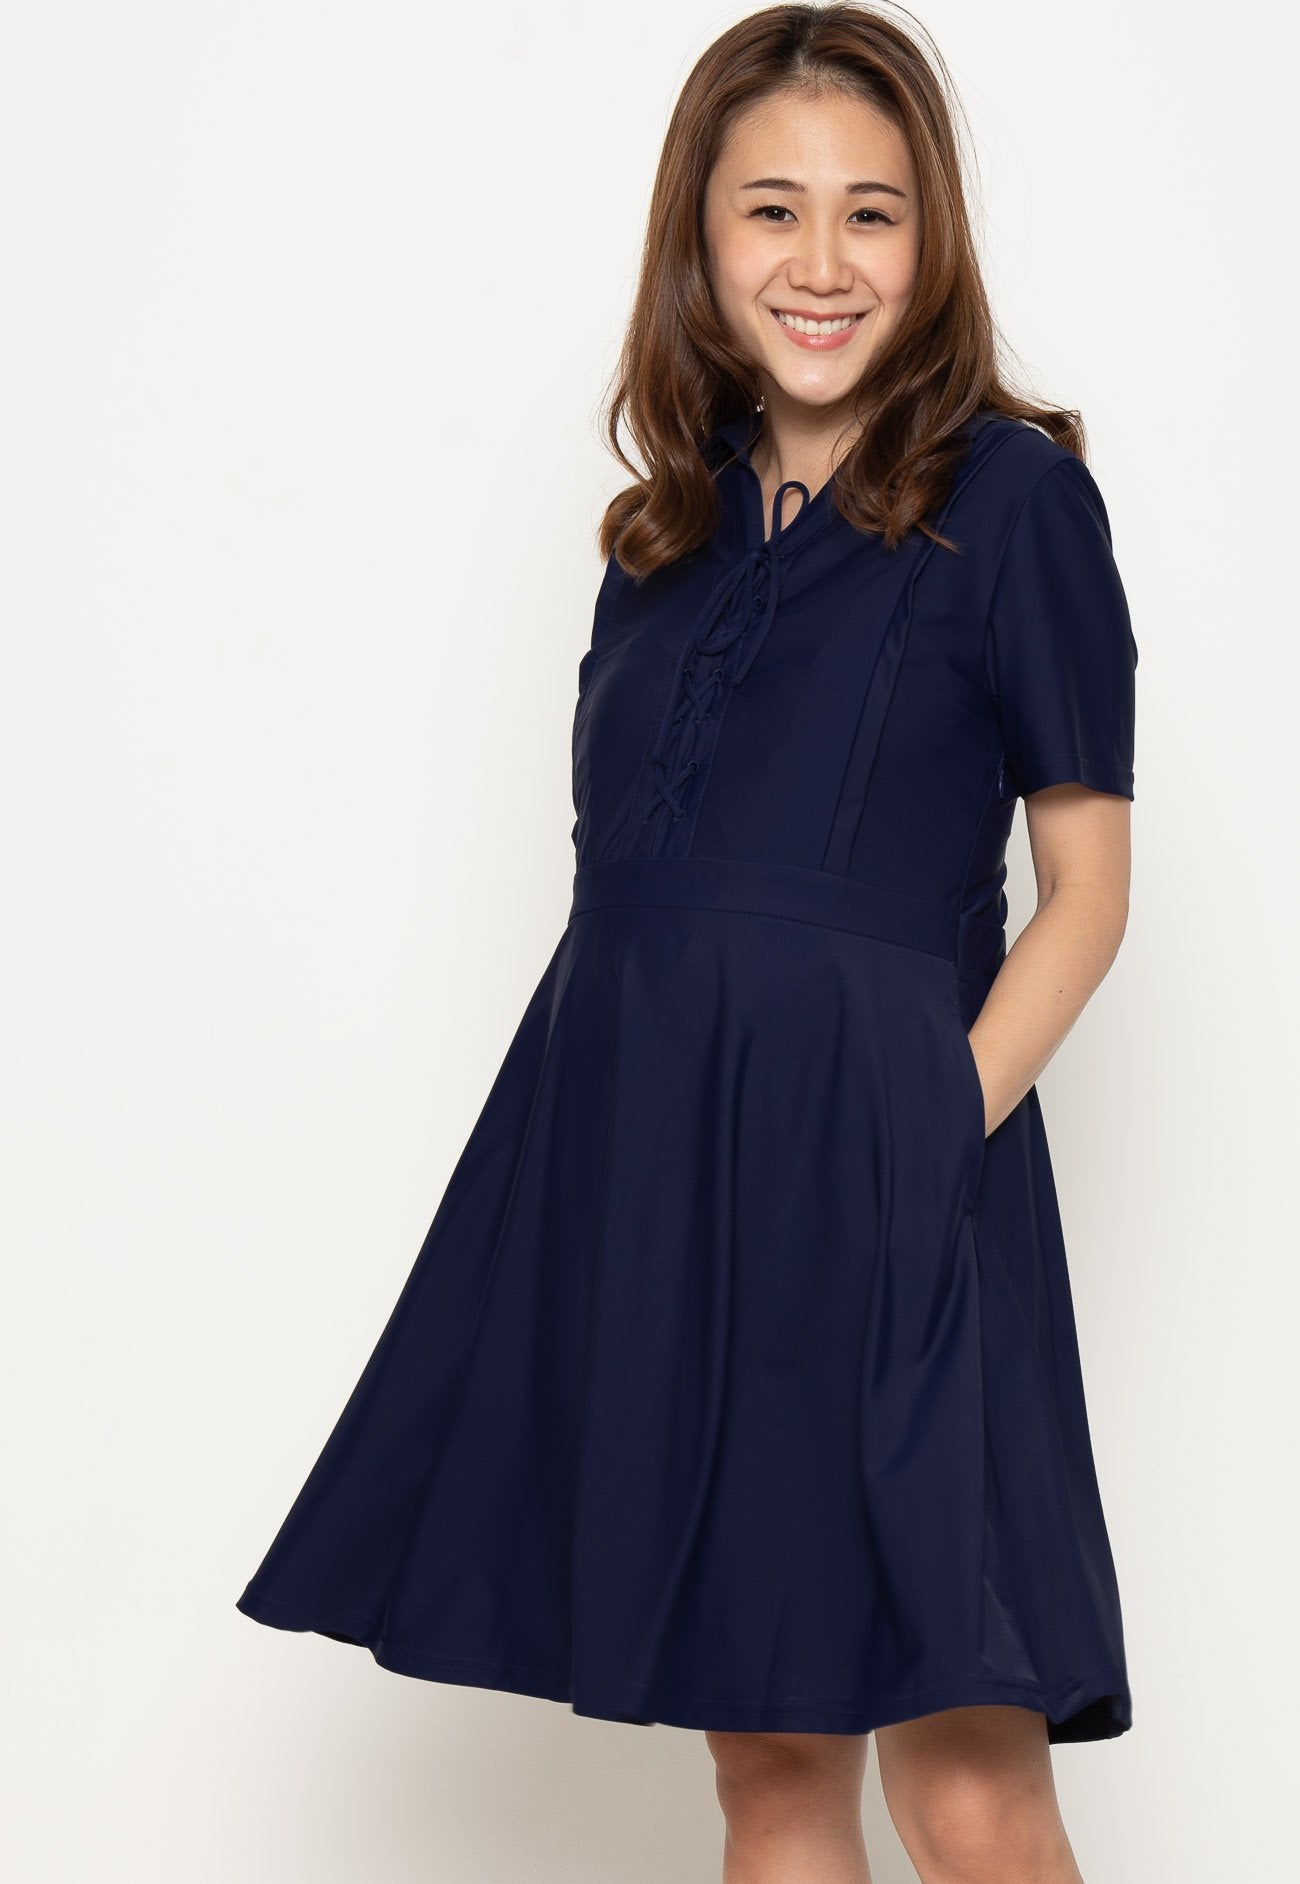 Crisscross Lace Nursing Dress in Navy  by Jump Eat Cry - Maternity and nursing wear